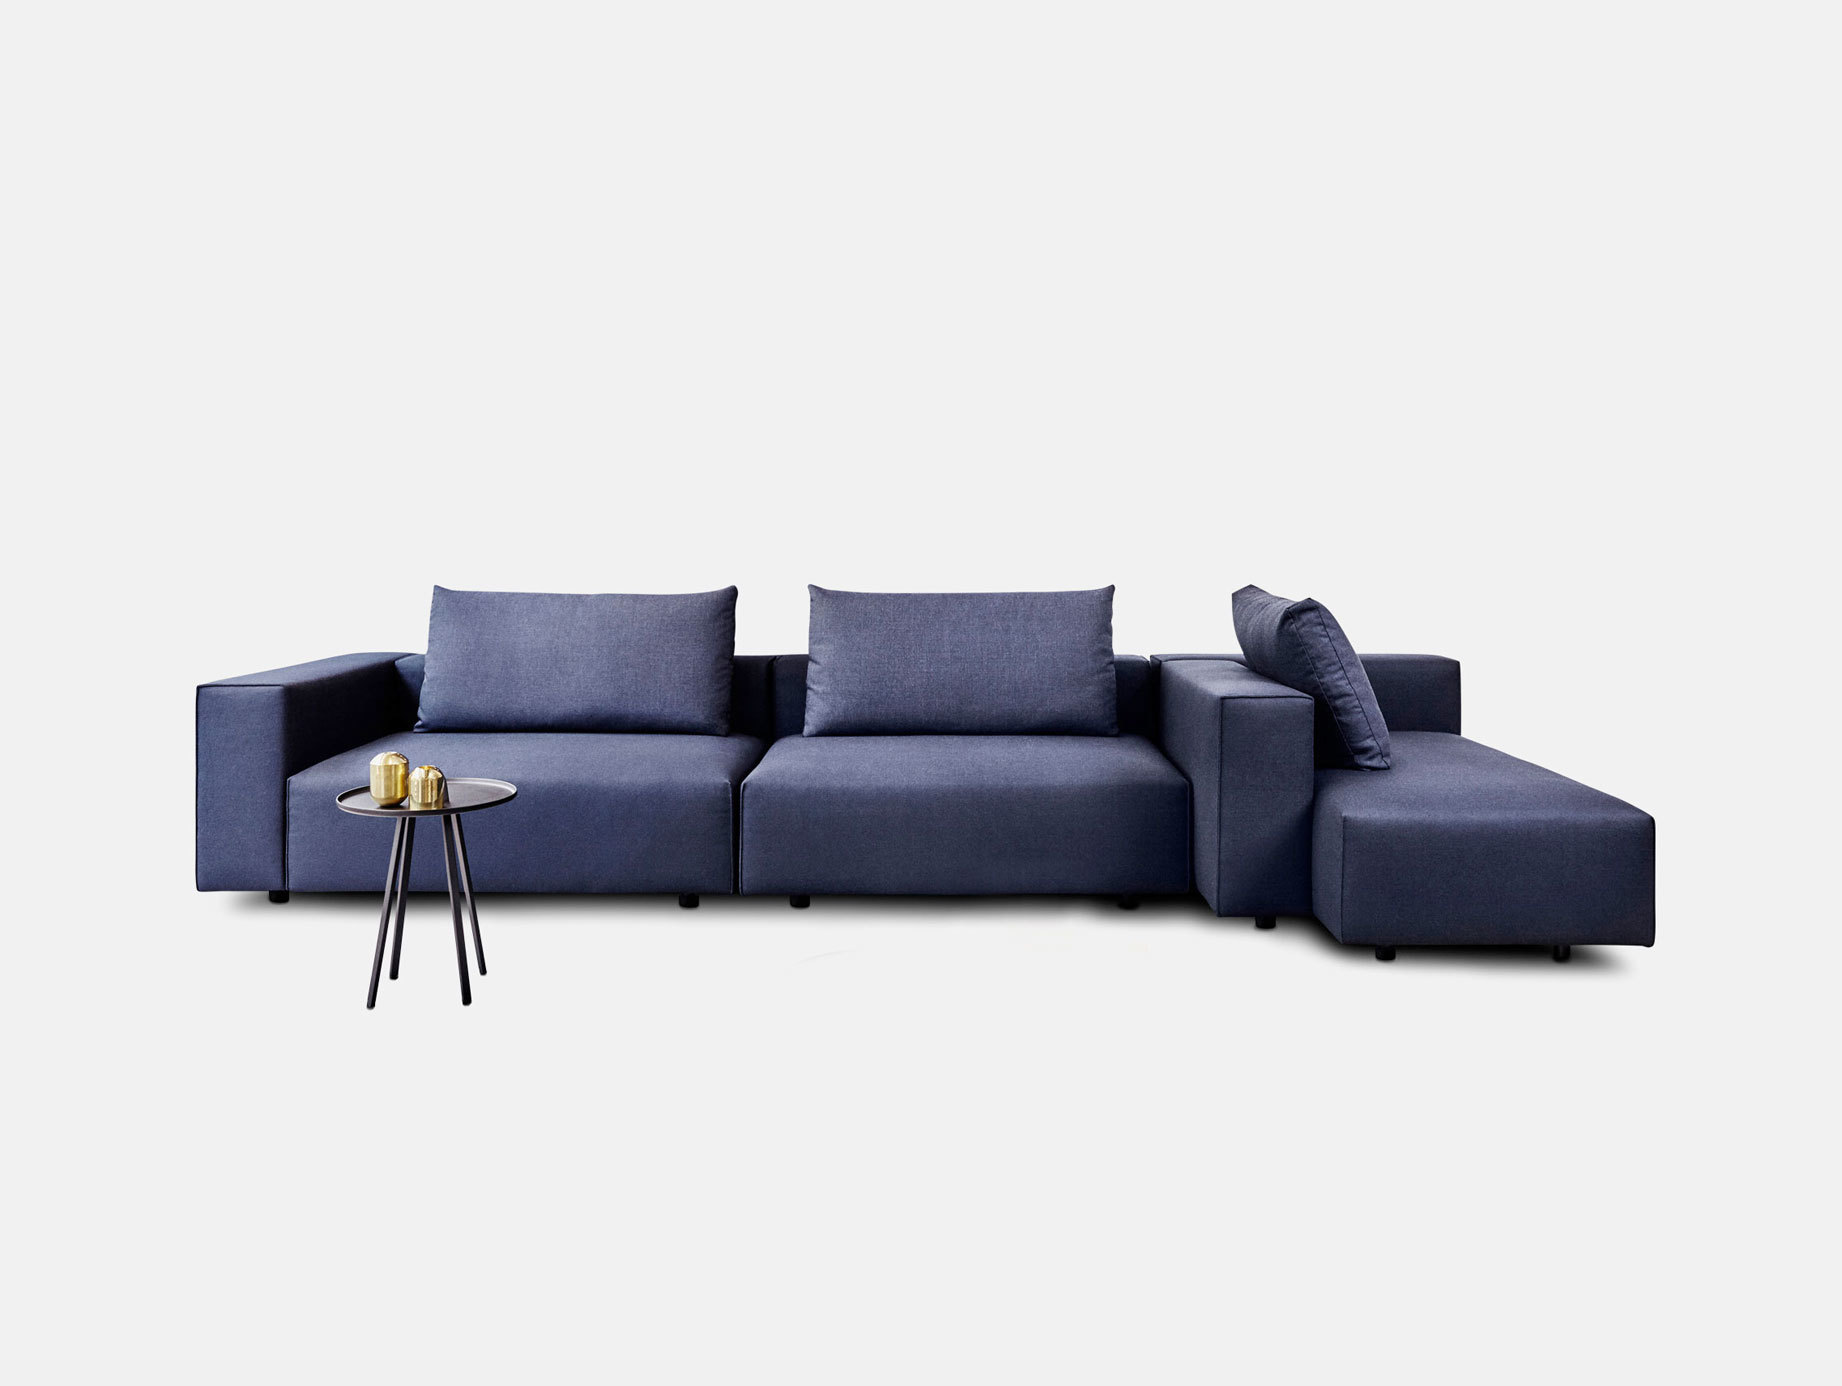 Domino Sofa image 1